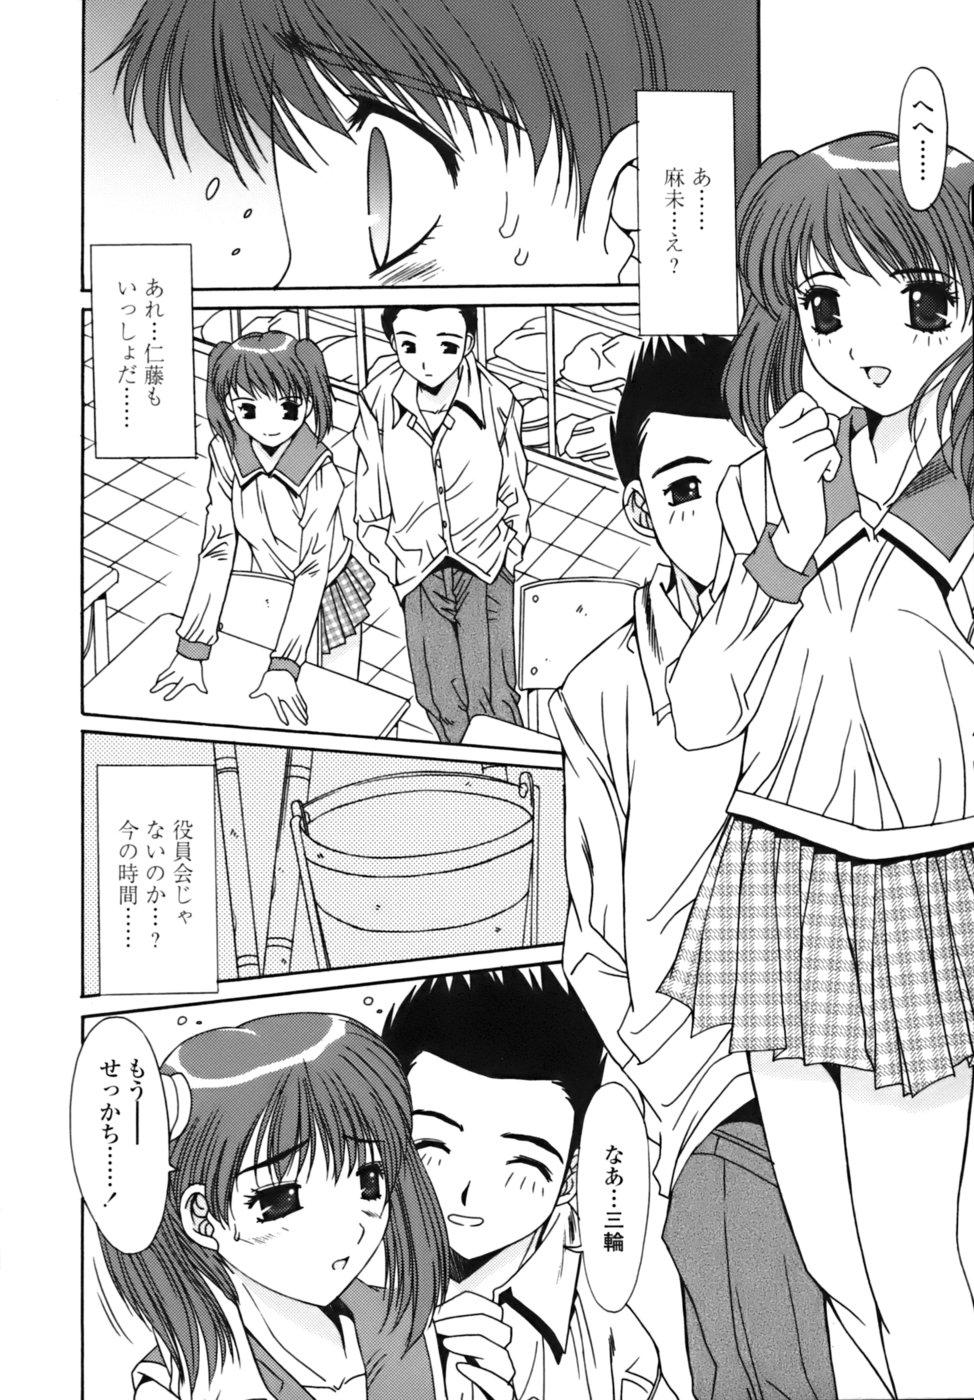 Sange No Koku - At the Time of Scattering Flowers 94